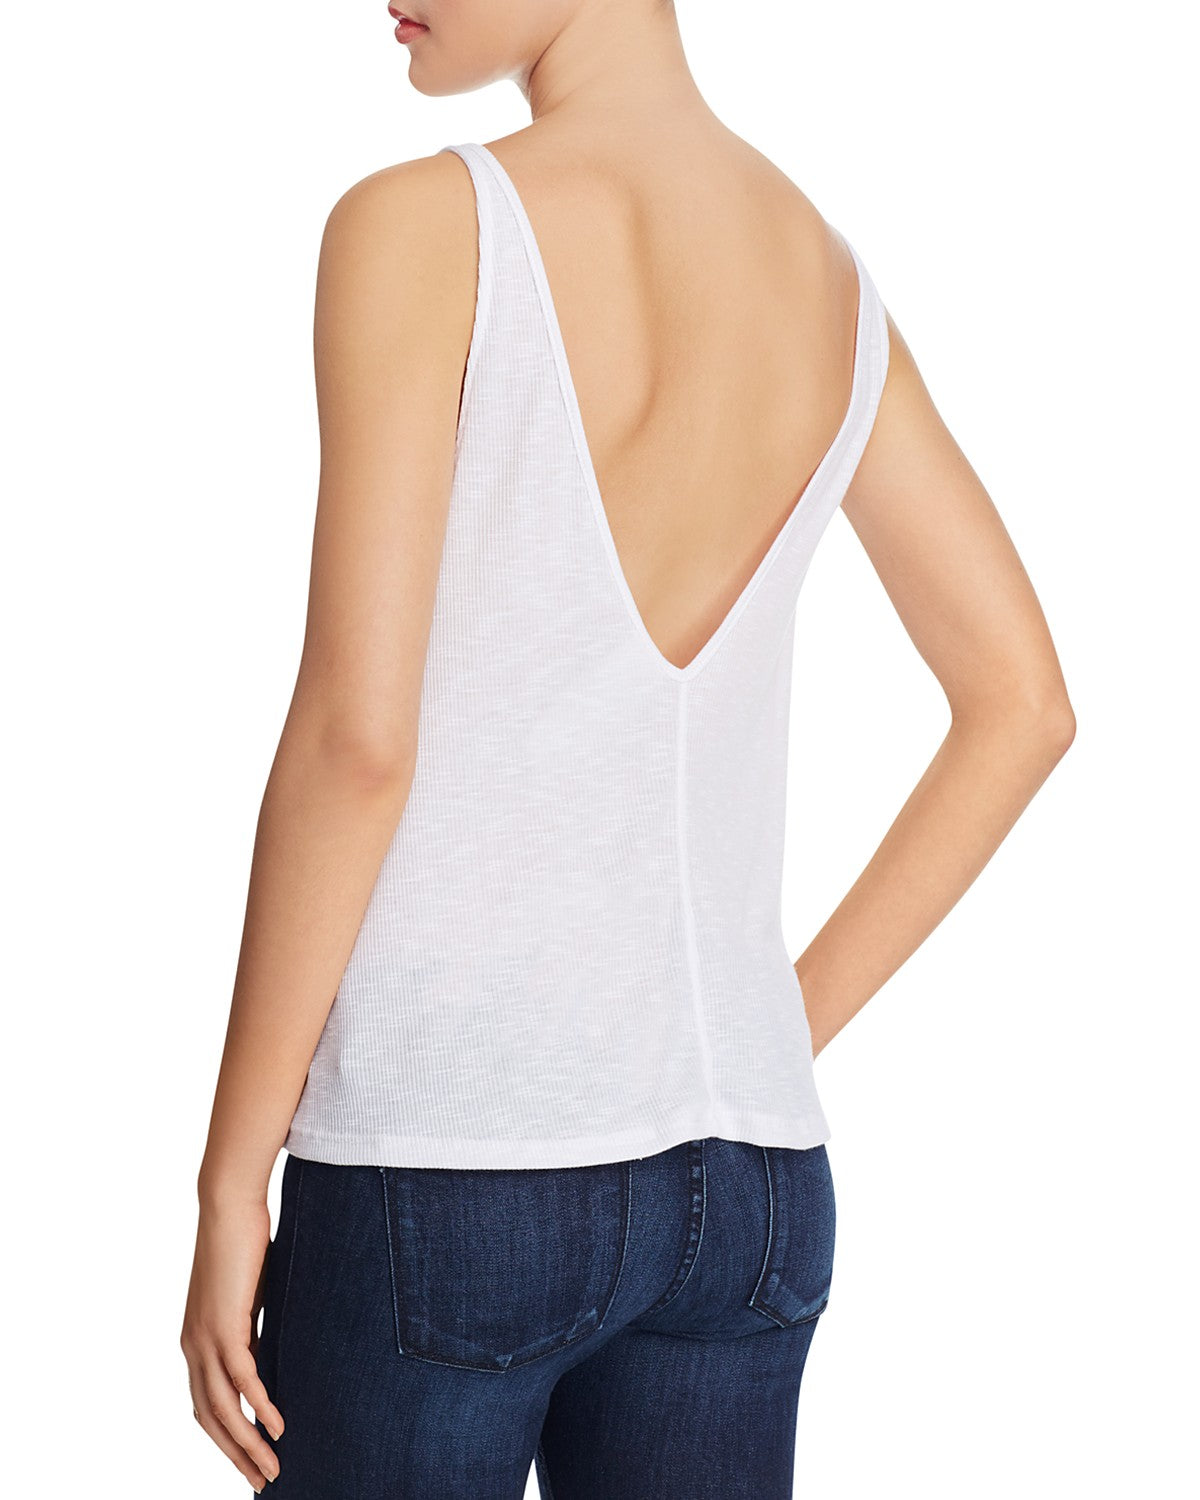 Free People Sleek 'N' Easy Tank - Gear Relapse